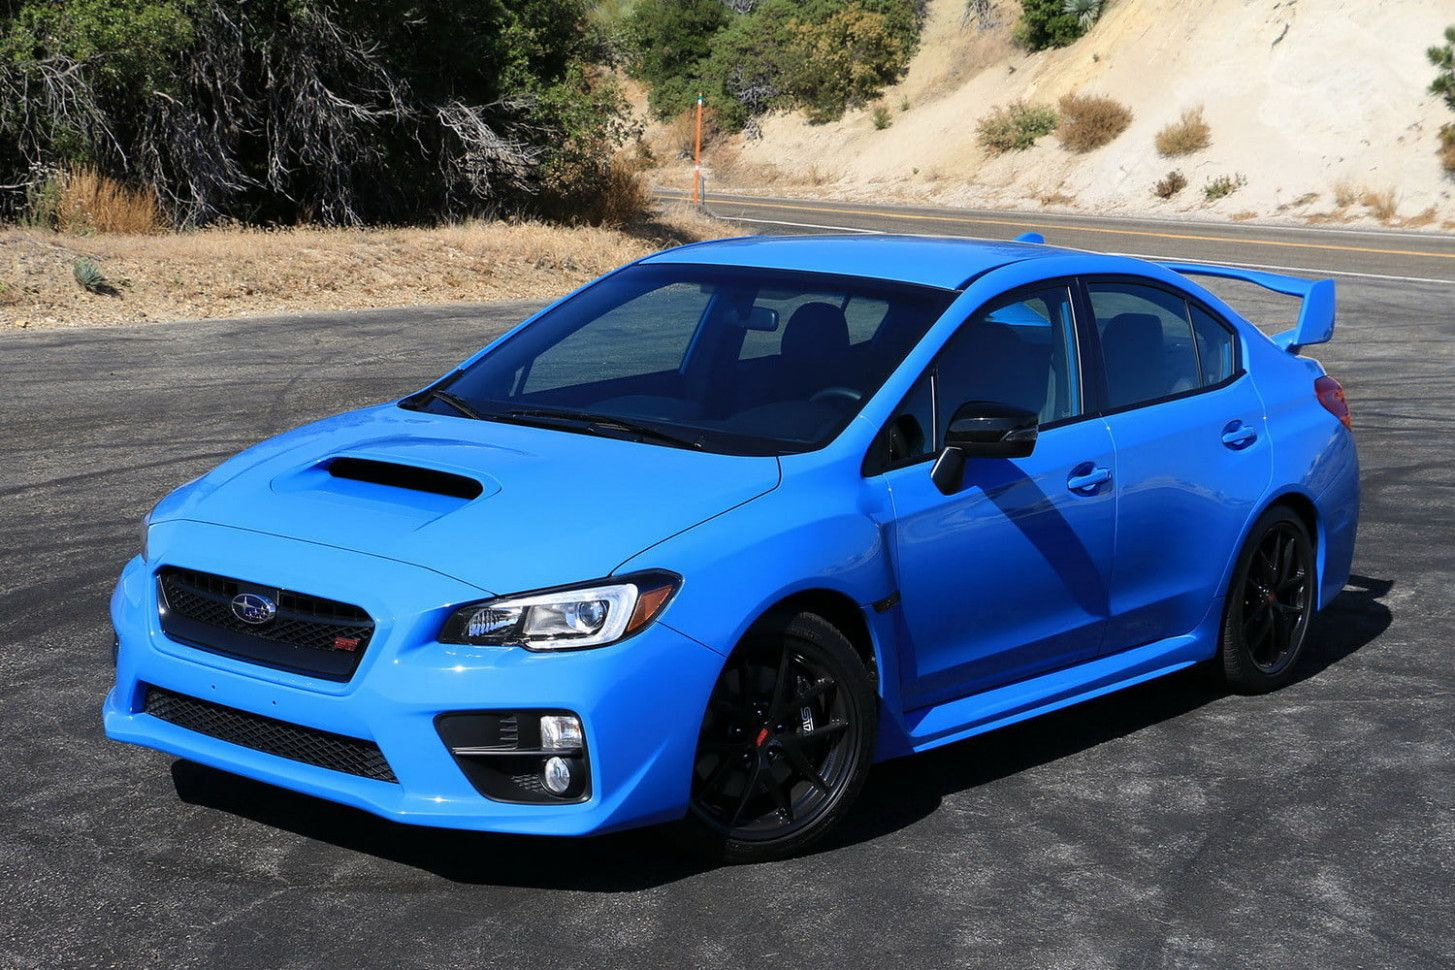 2020 Wrx Sti Hyperblue Model